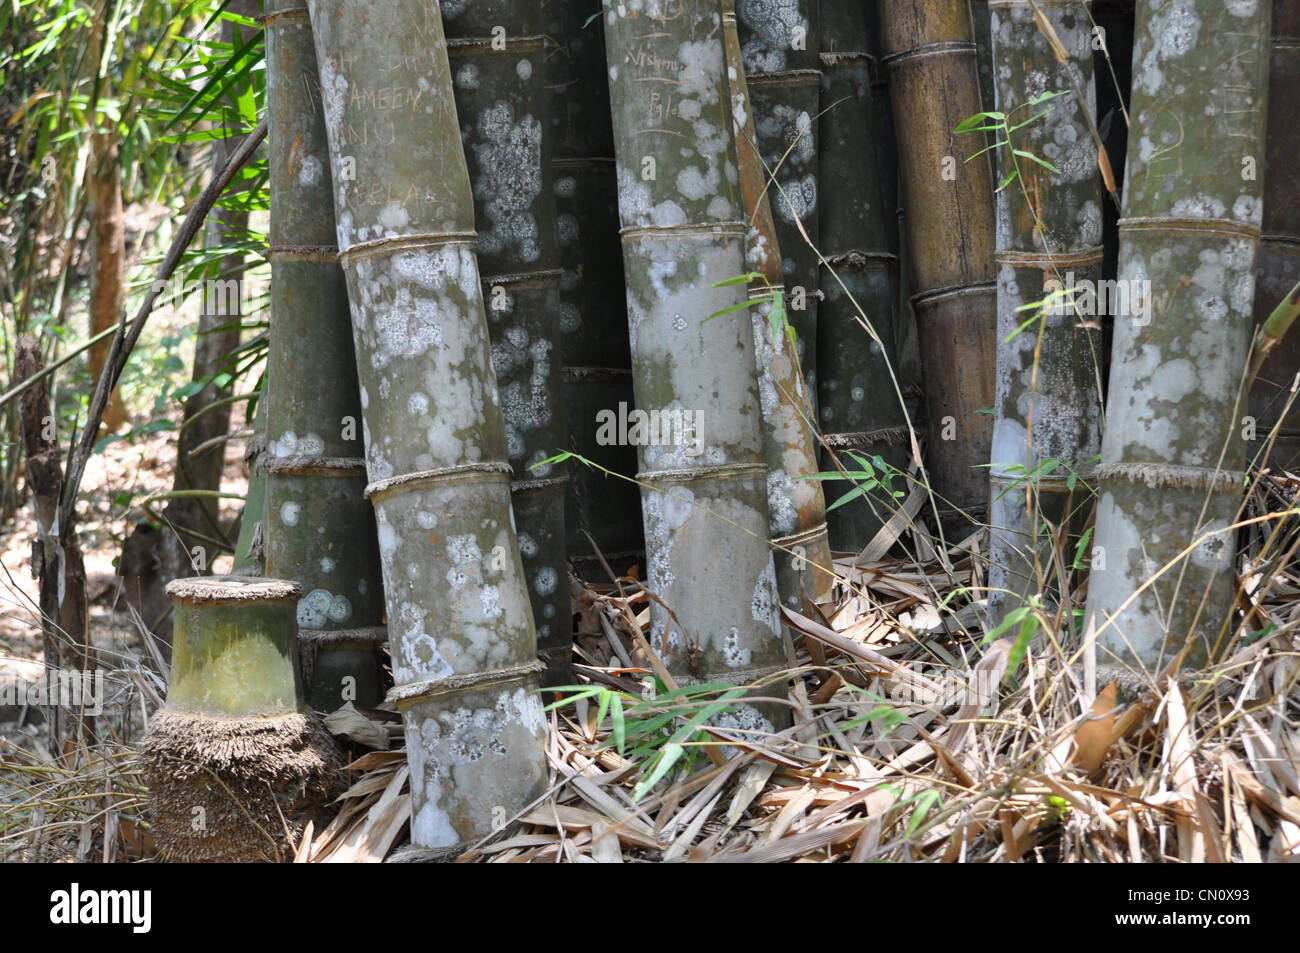 Bamboo stems - Stock Image